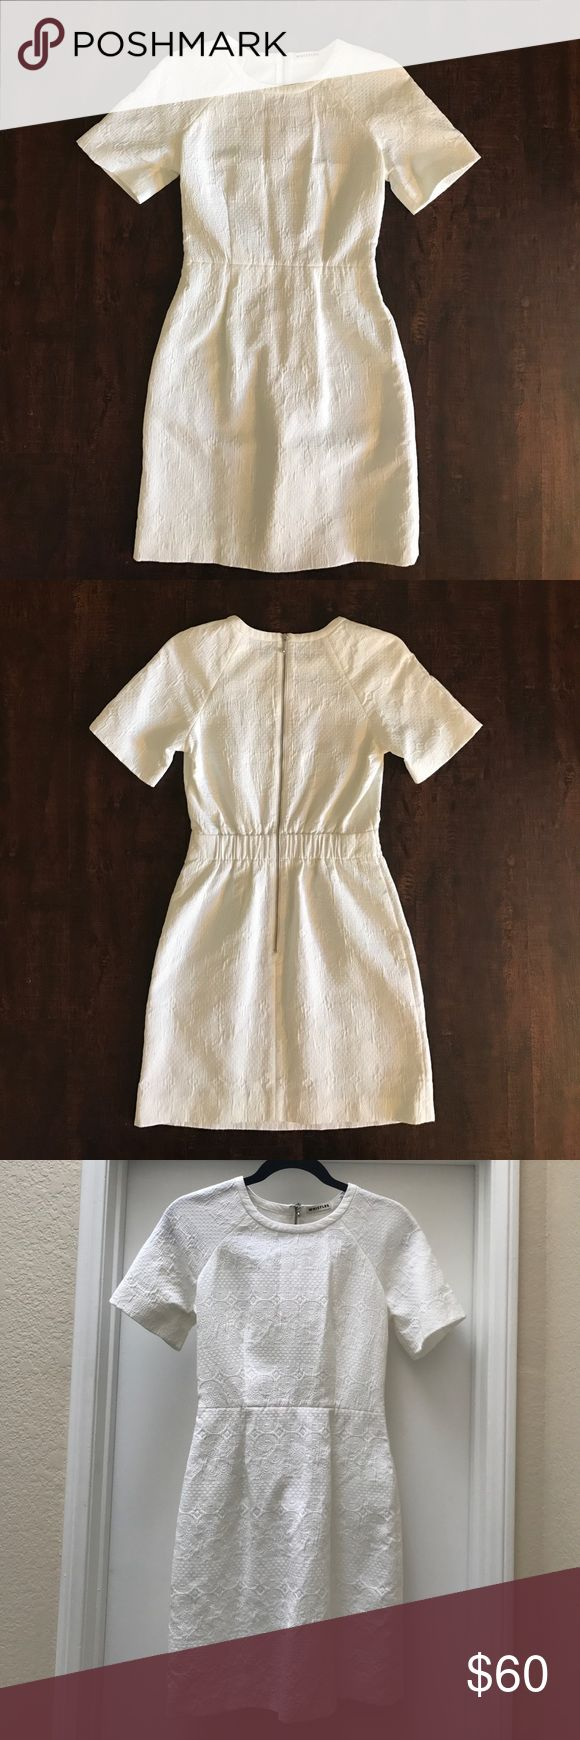 Beautiful white WHISTLES dress size 2. Beautiful white Whistles dress with amazing details in the fabric (close up picture provided). This dress would be perfect for a bridal shower or any spring/ summer event! Whistles Dresses Mini